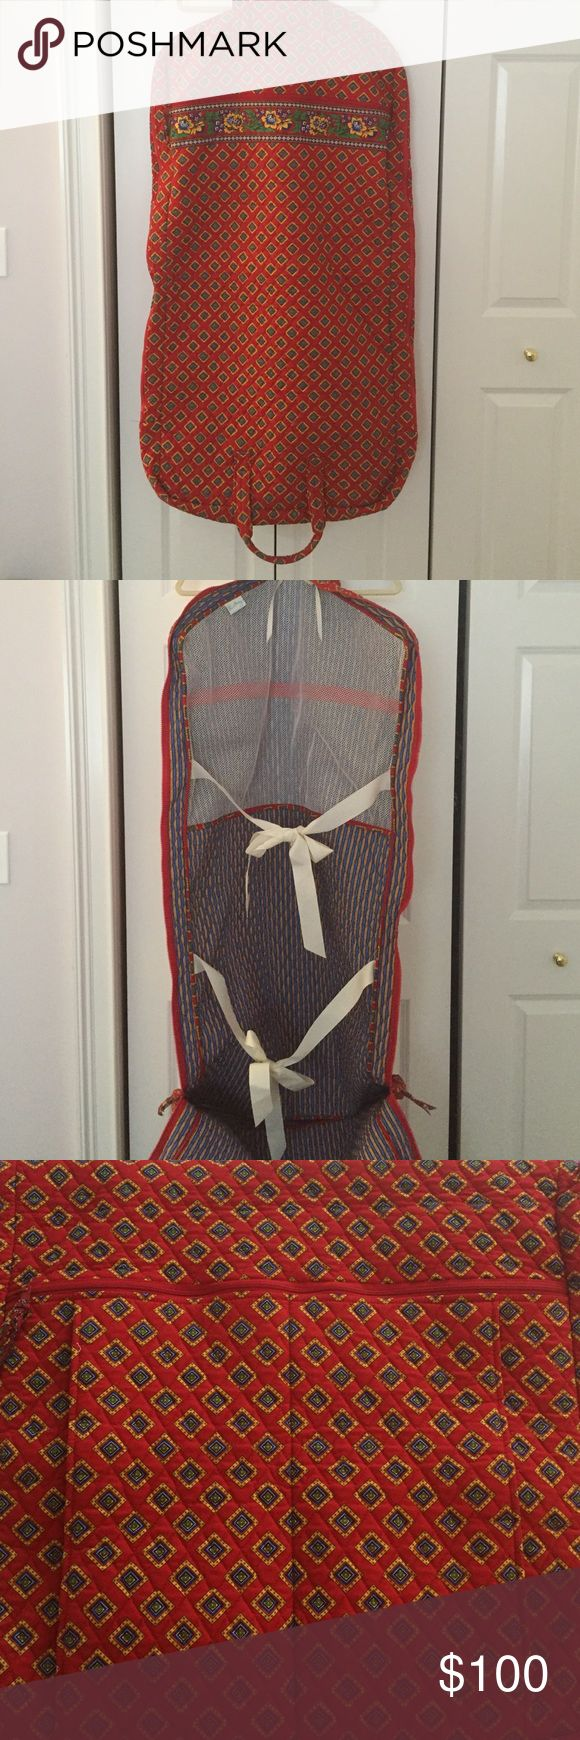 """Vintage Vera Bradley Garment Bag Vintage Vera Bradley Garment Bag in """"Villa Red"""" (pattern retired Summer 2005). Used once and in pristine condition! See photos for a look at the bag interior. Any and all questions about this piece are welcome! ❤️💛💙 Vera Bradley Bags"""